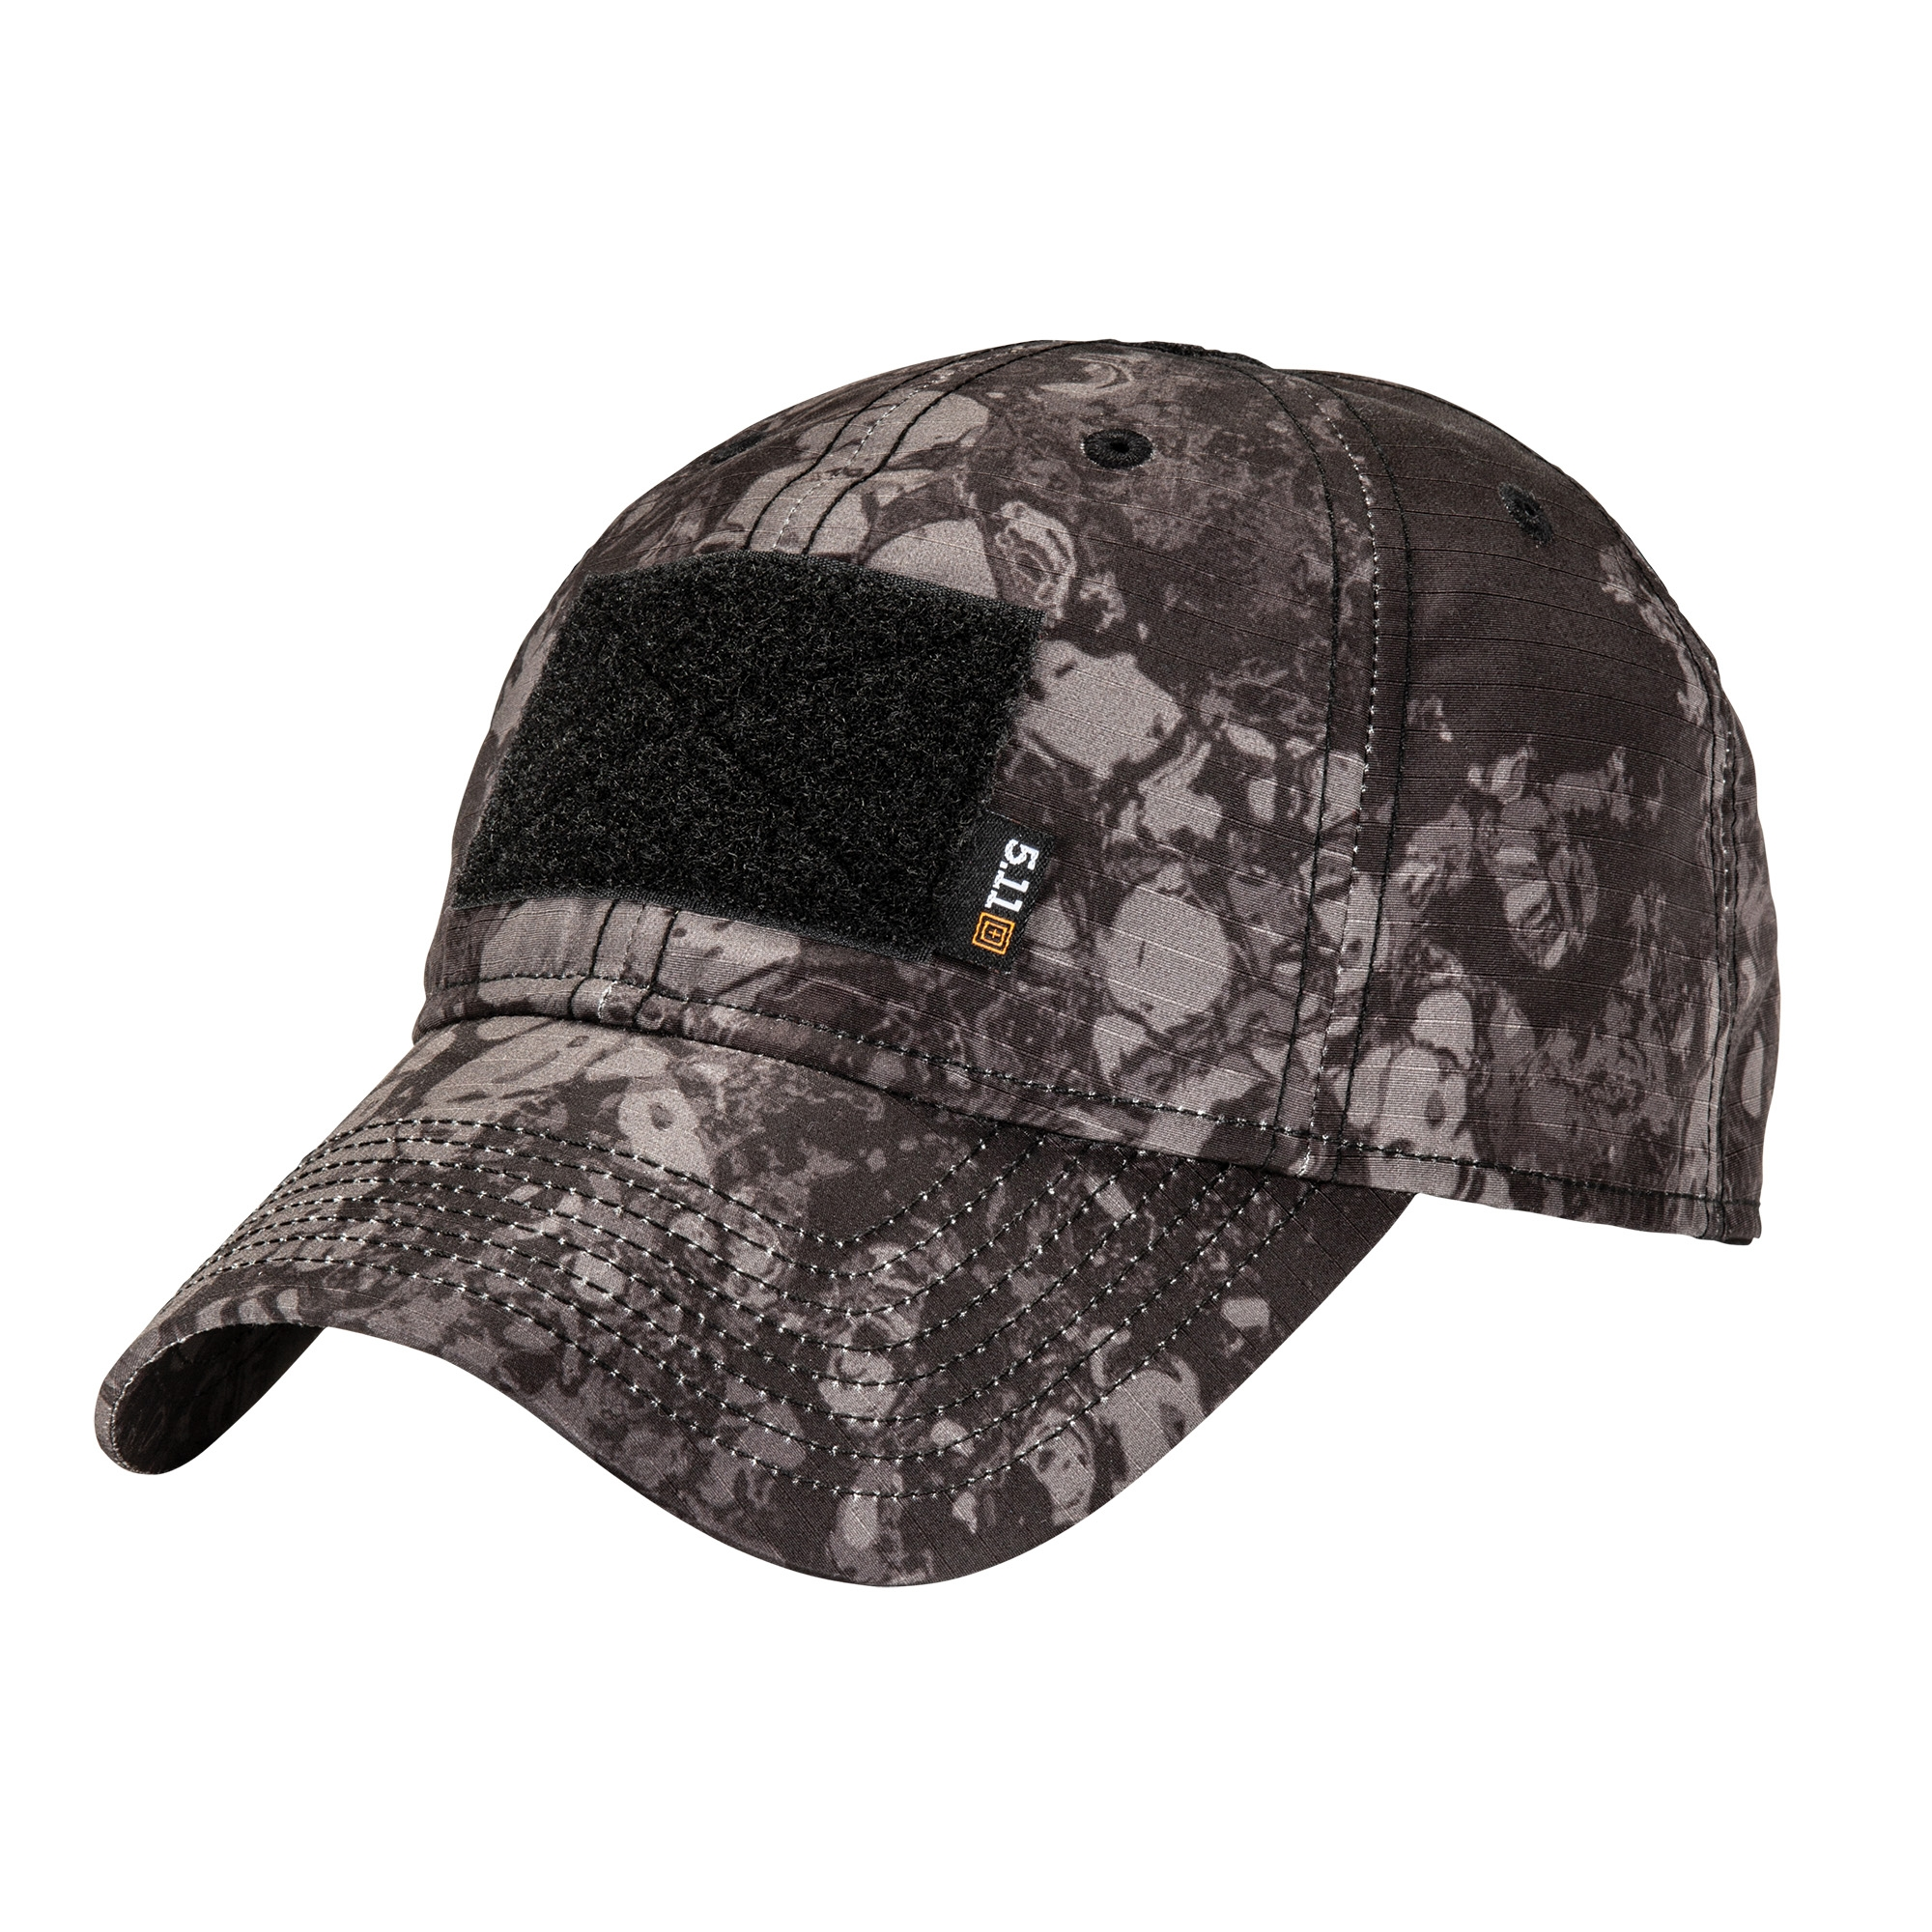 38688f028ff GEO7™ Uniform Hat - 5.11 Tactical